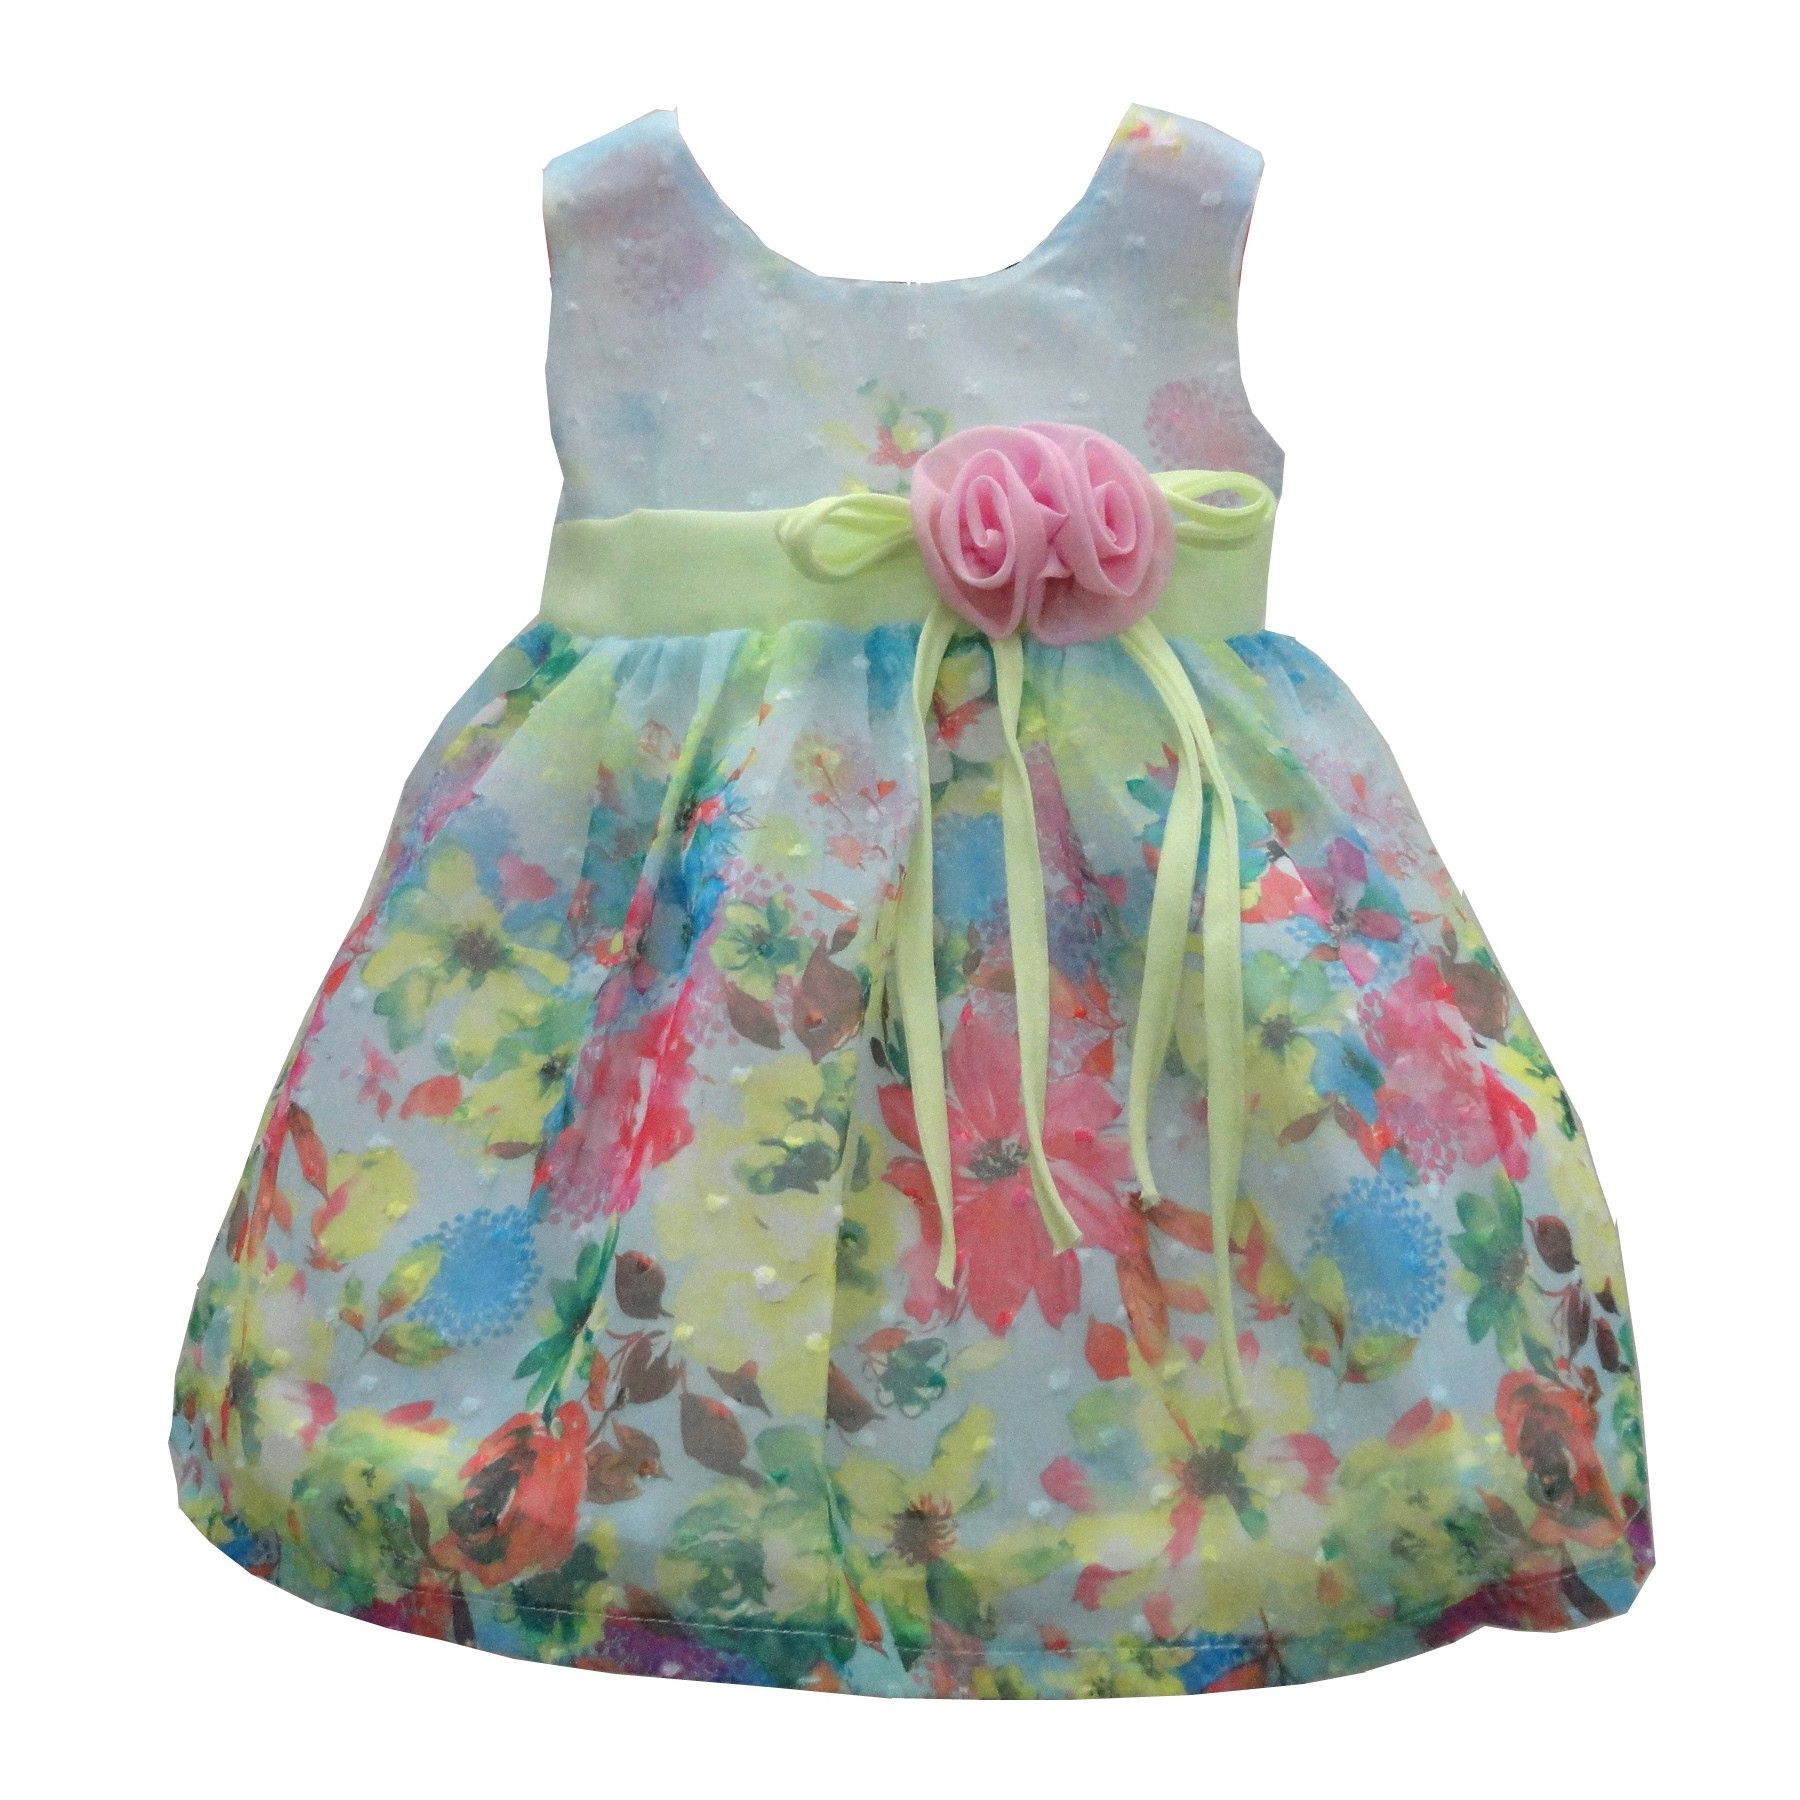 Little Girls Green Dot Embroidered Floral Print Sleeveless Casual Dress 2T